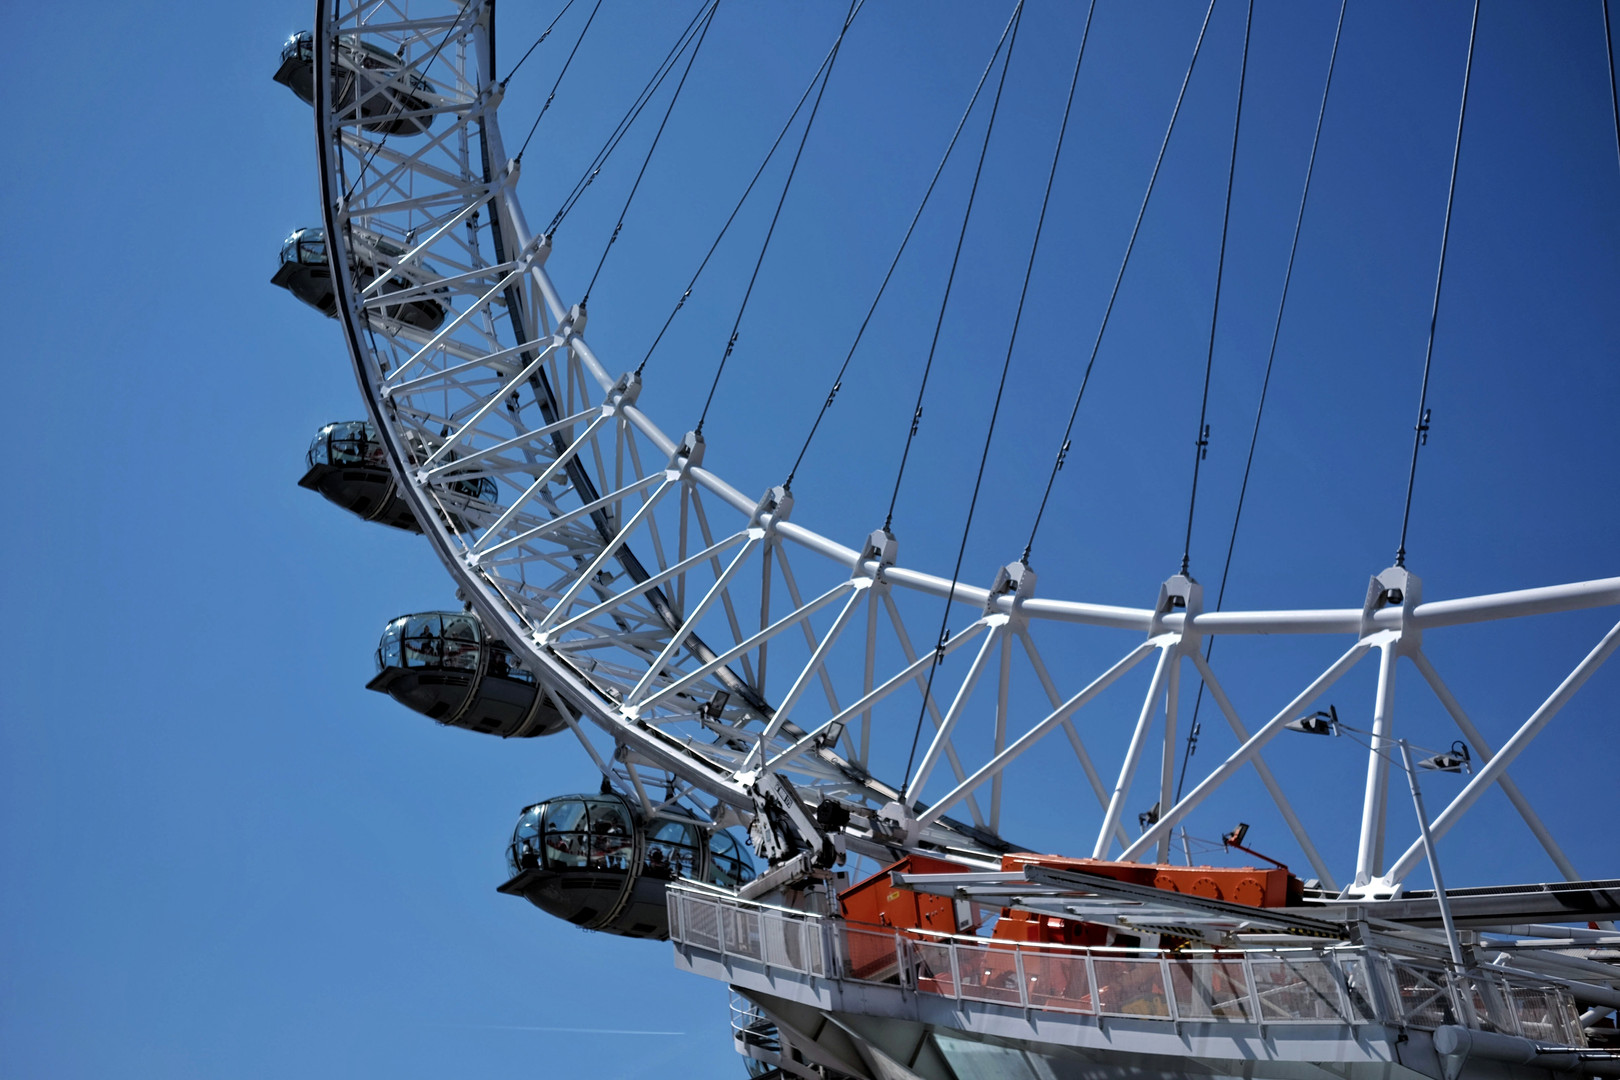 London Eye.jpeg